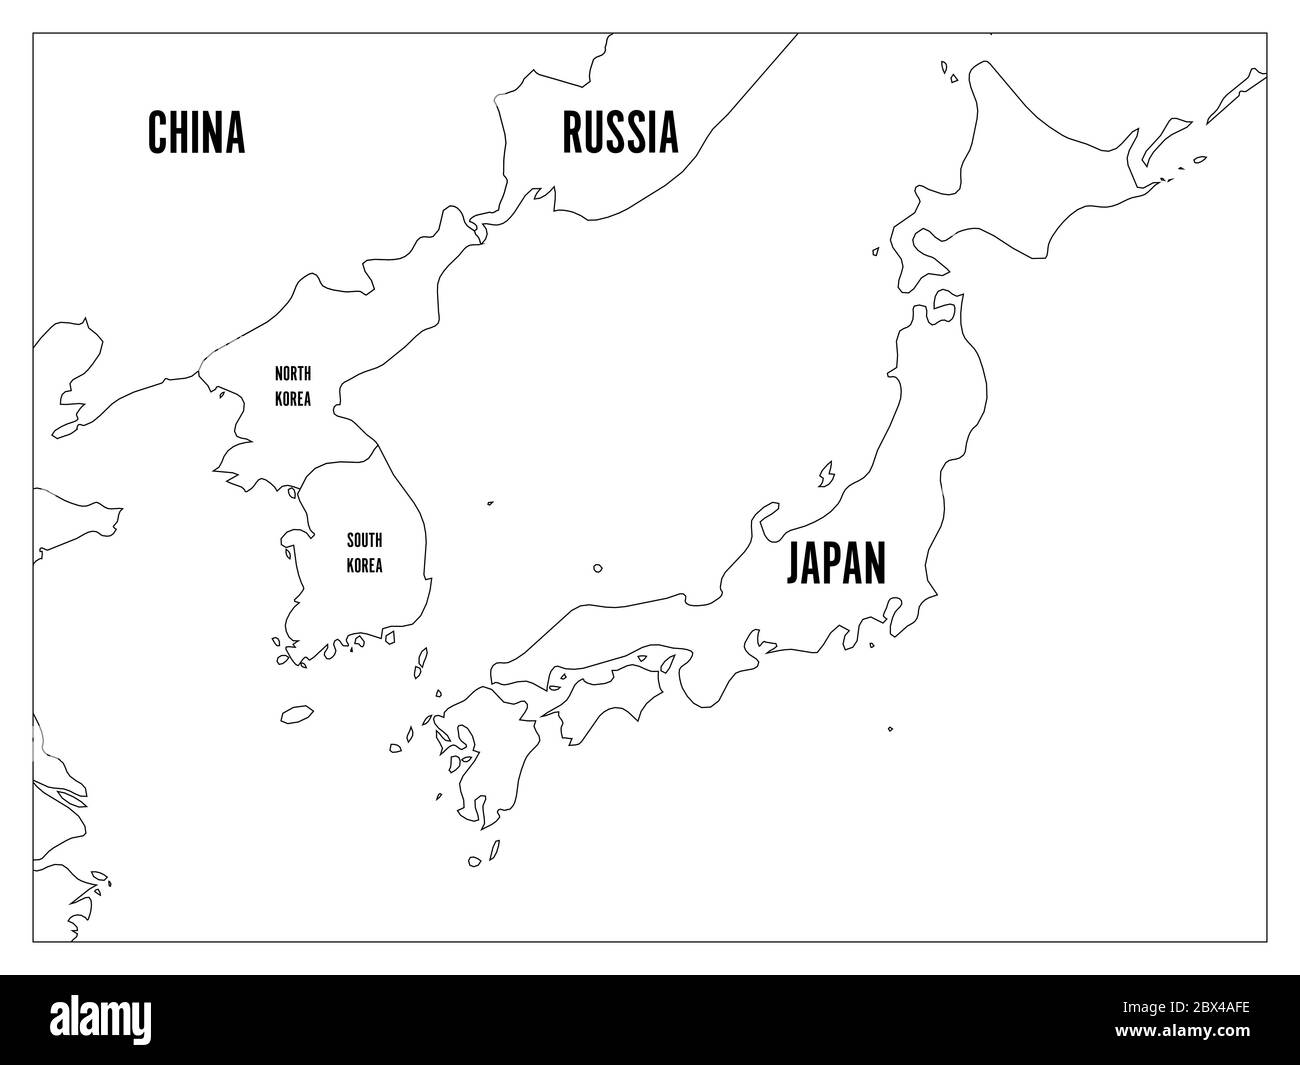 Political Map Of Korean And Japanese Region South Korea North Korea And Japan Black Outline Map With Black Labeling On White Background Vector Illustration Stock Vector Image Art Alamy